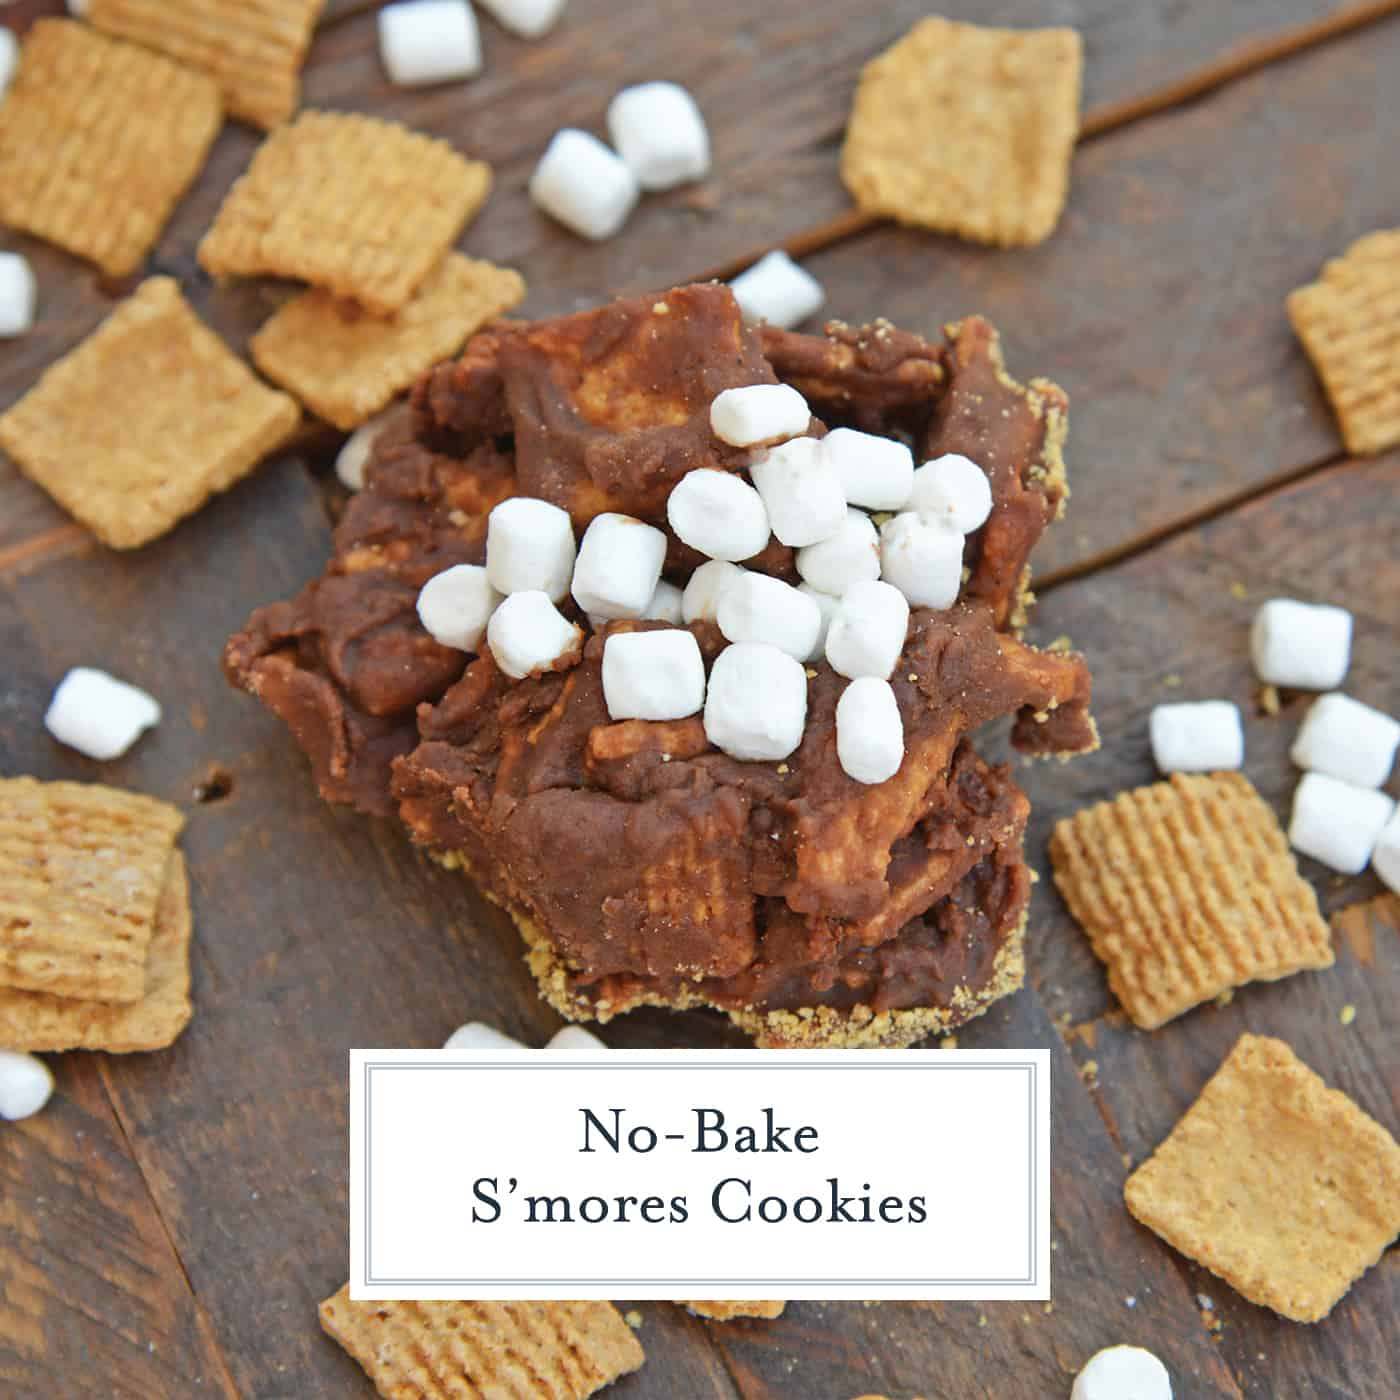 No Bake S'mores Cookies are an easy s'mores recipe made with Golden Grahams and marshmallows. Your favorite s'mores flavor without the bonfire! #smorescookies #nobakecookies #smoresrecipe www.savoryexperiments.com